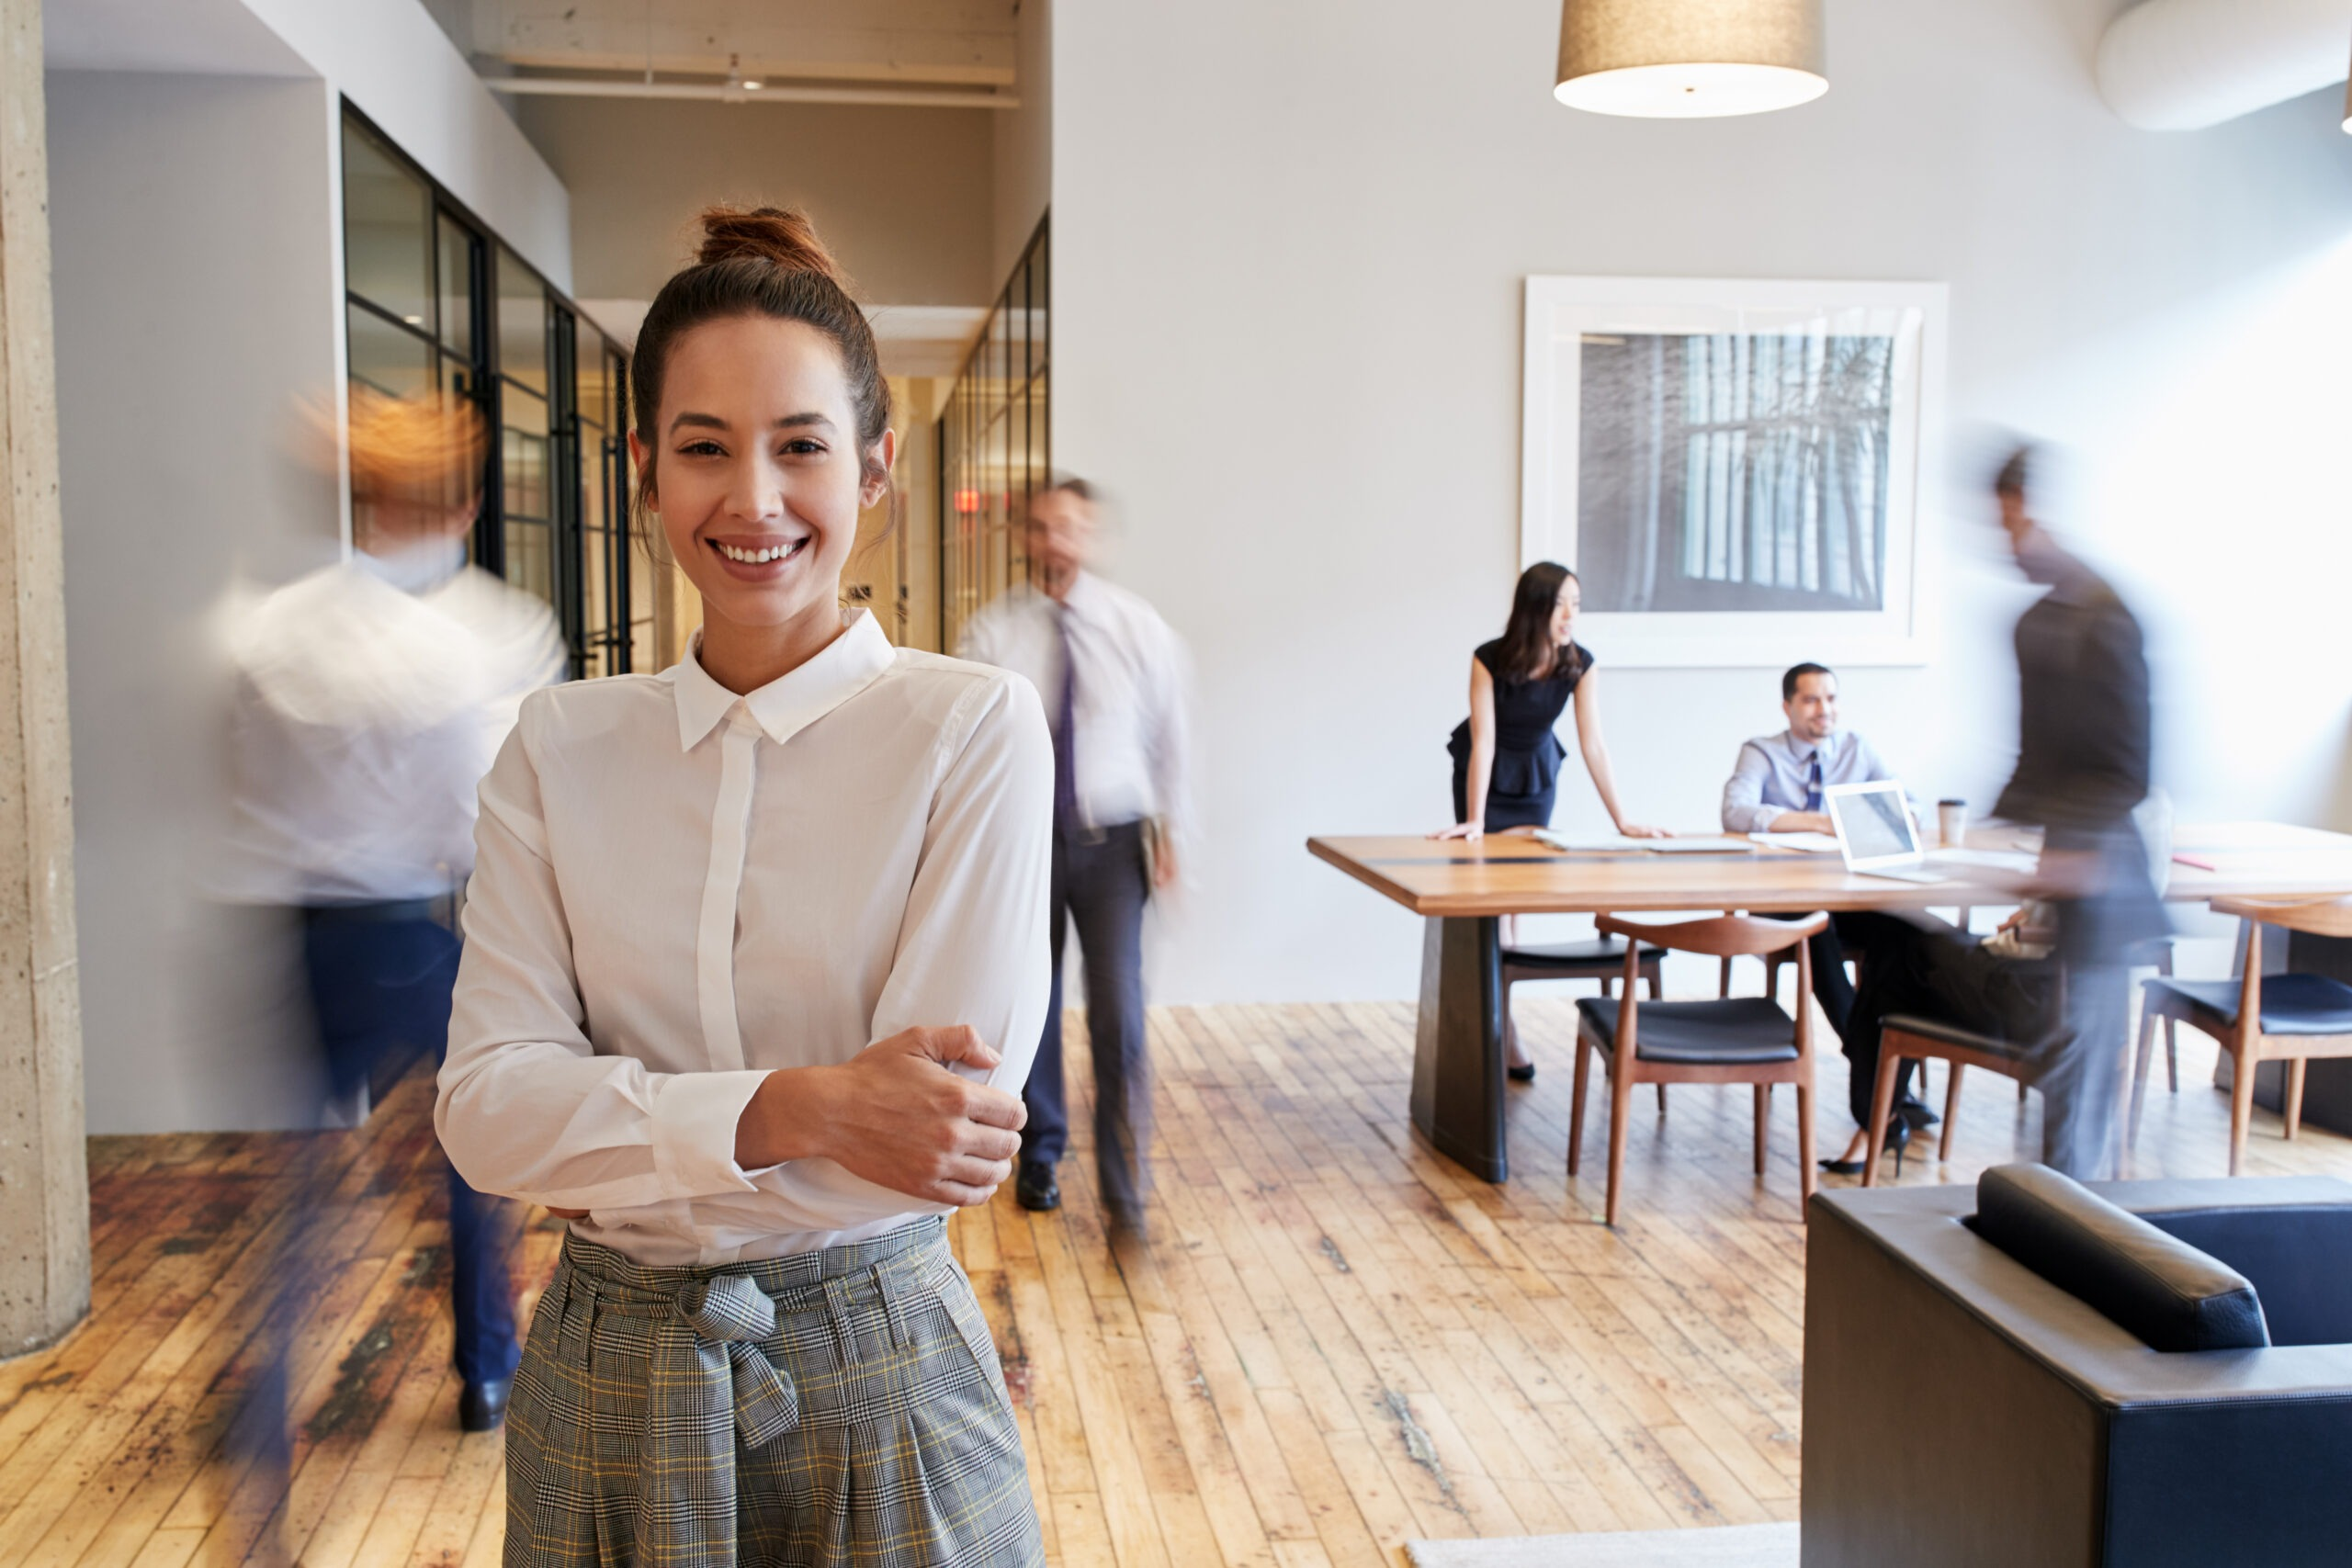 Portrait,Of,Young,White,Woman,In,A,Busy,Modern,Workplace